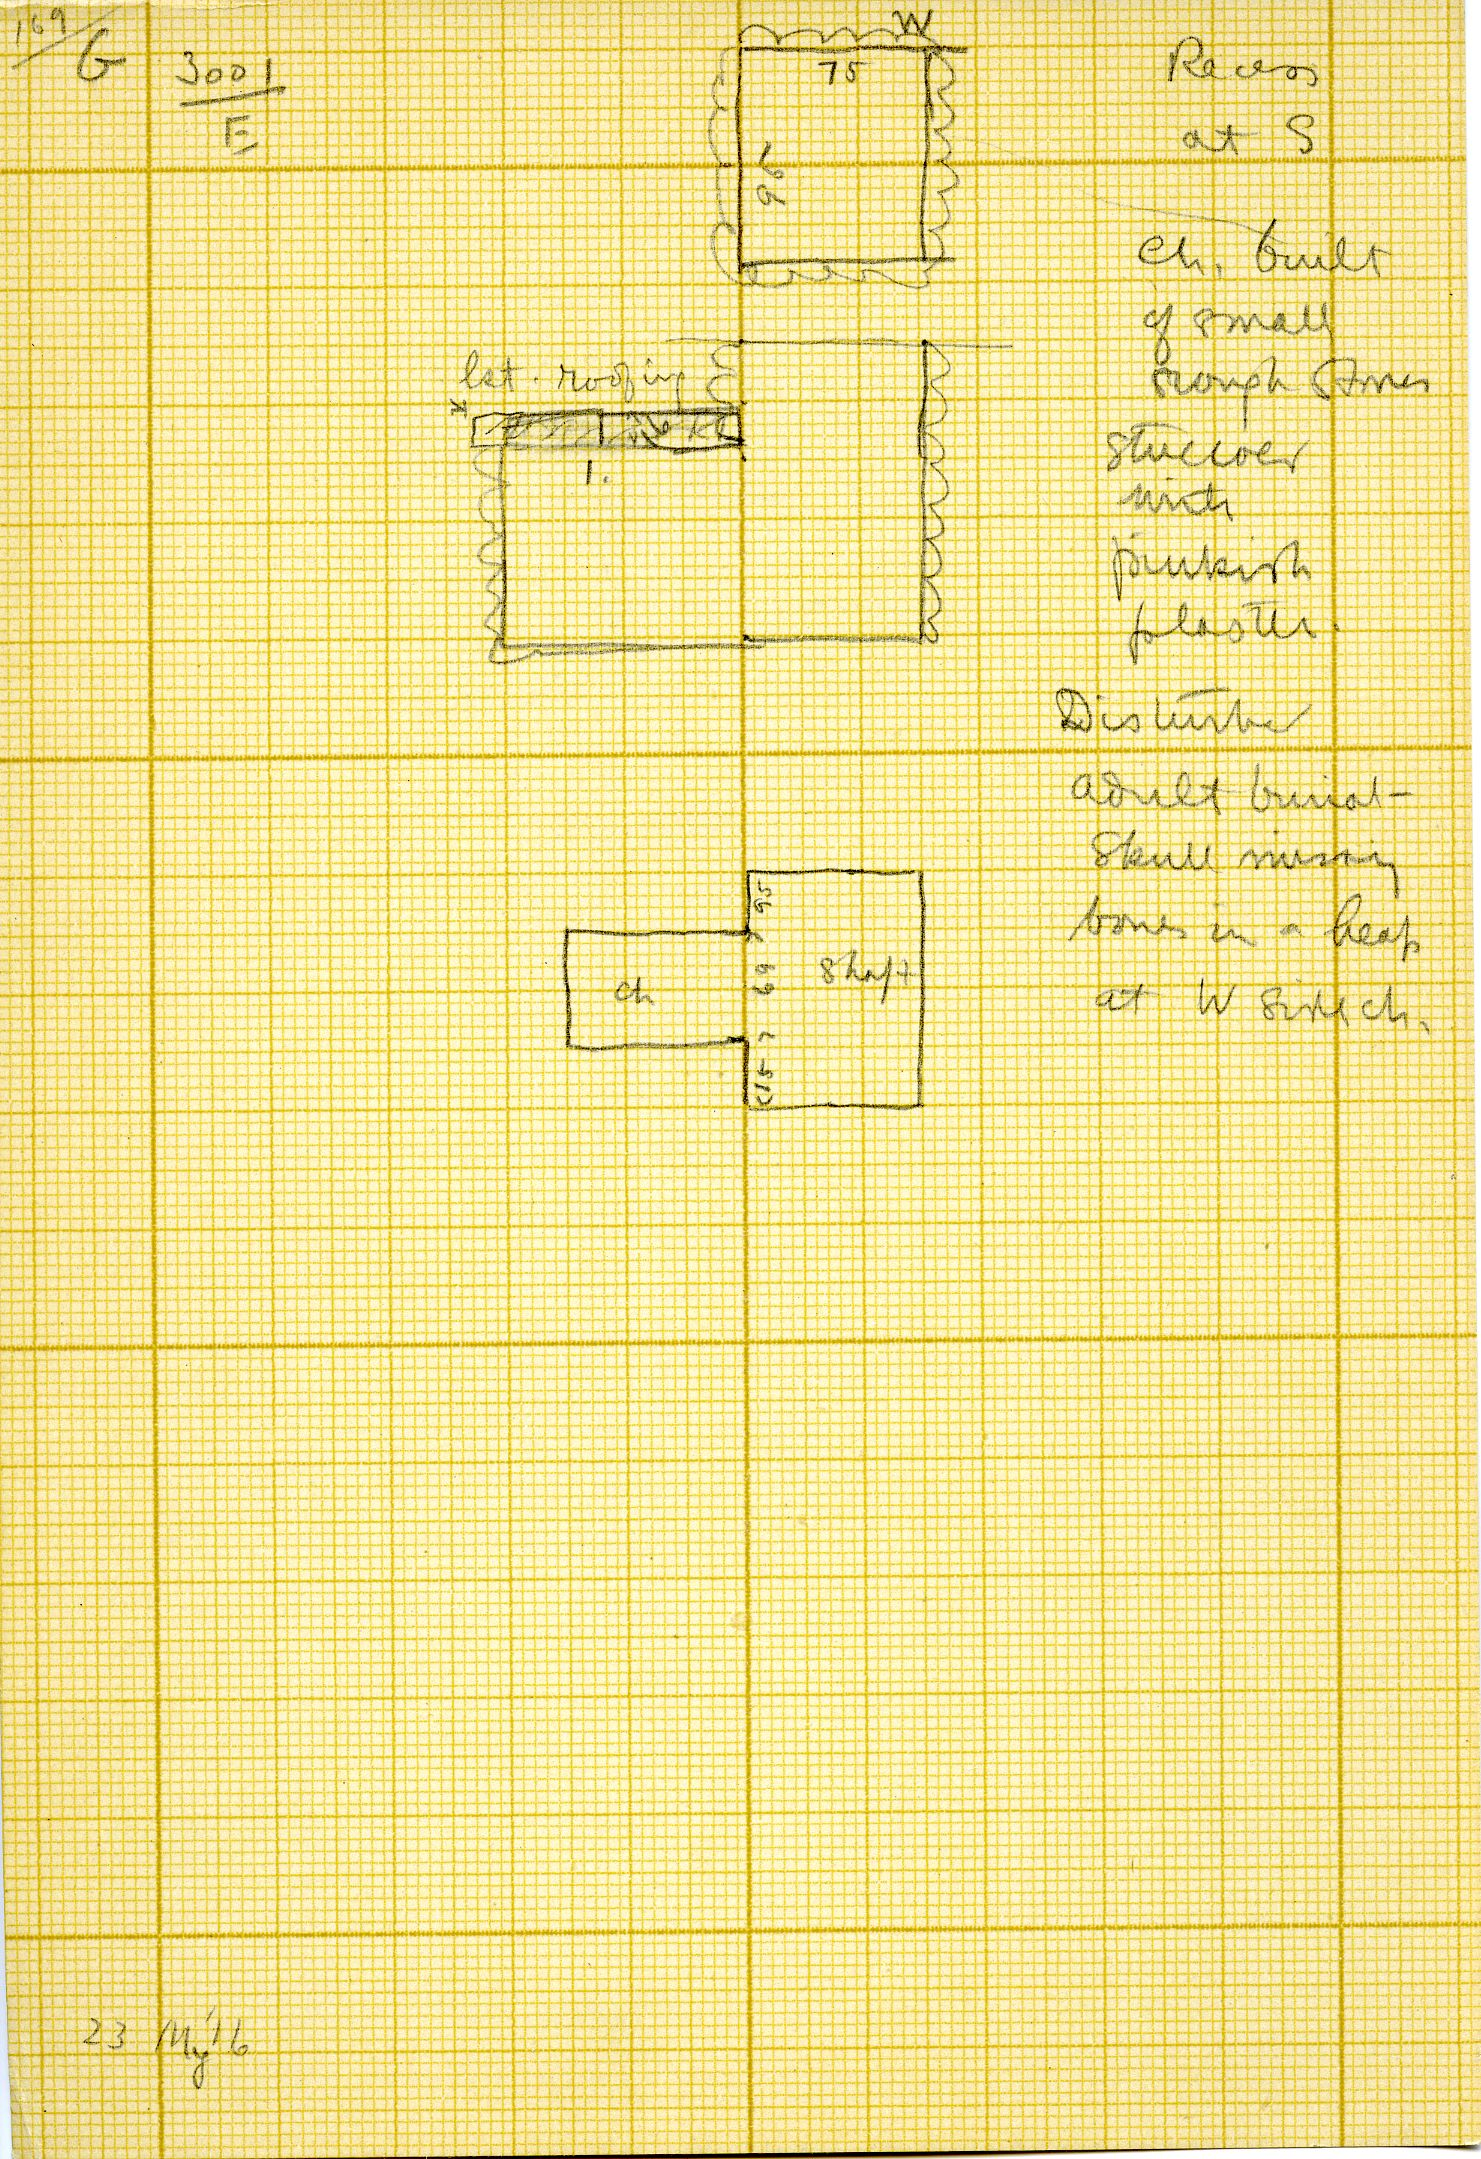 Maps and plans: G 3001, Shaft E